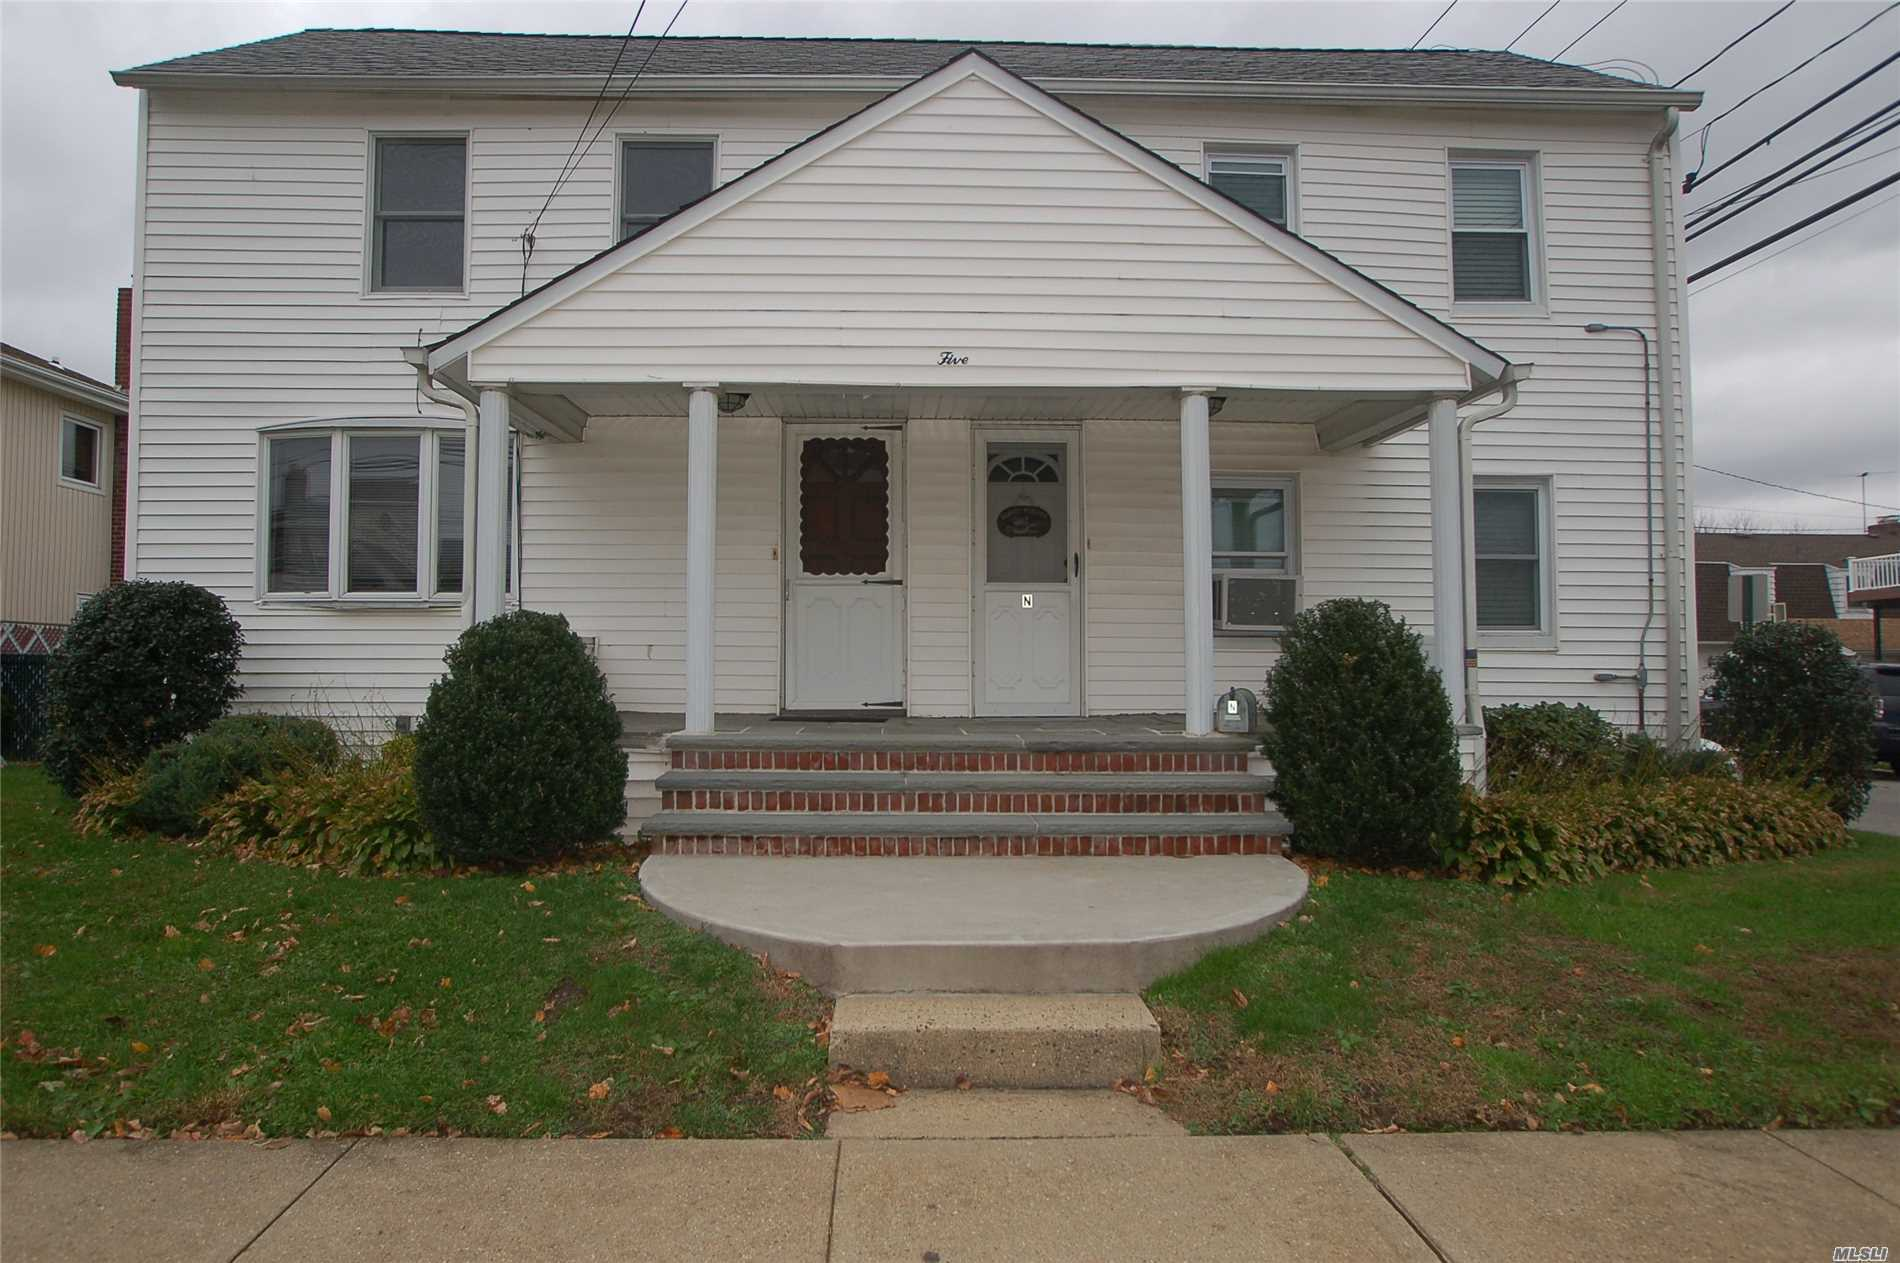 Legal Two Family Duplex Side By Side, Each Apt. Has 1Bedrm 1Bath. Everything Separate, Electric Meters, Basements, Yards, Heating System. Washer And Dryer Hook-Ups Available For Each Apartment.